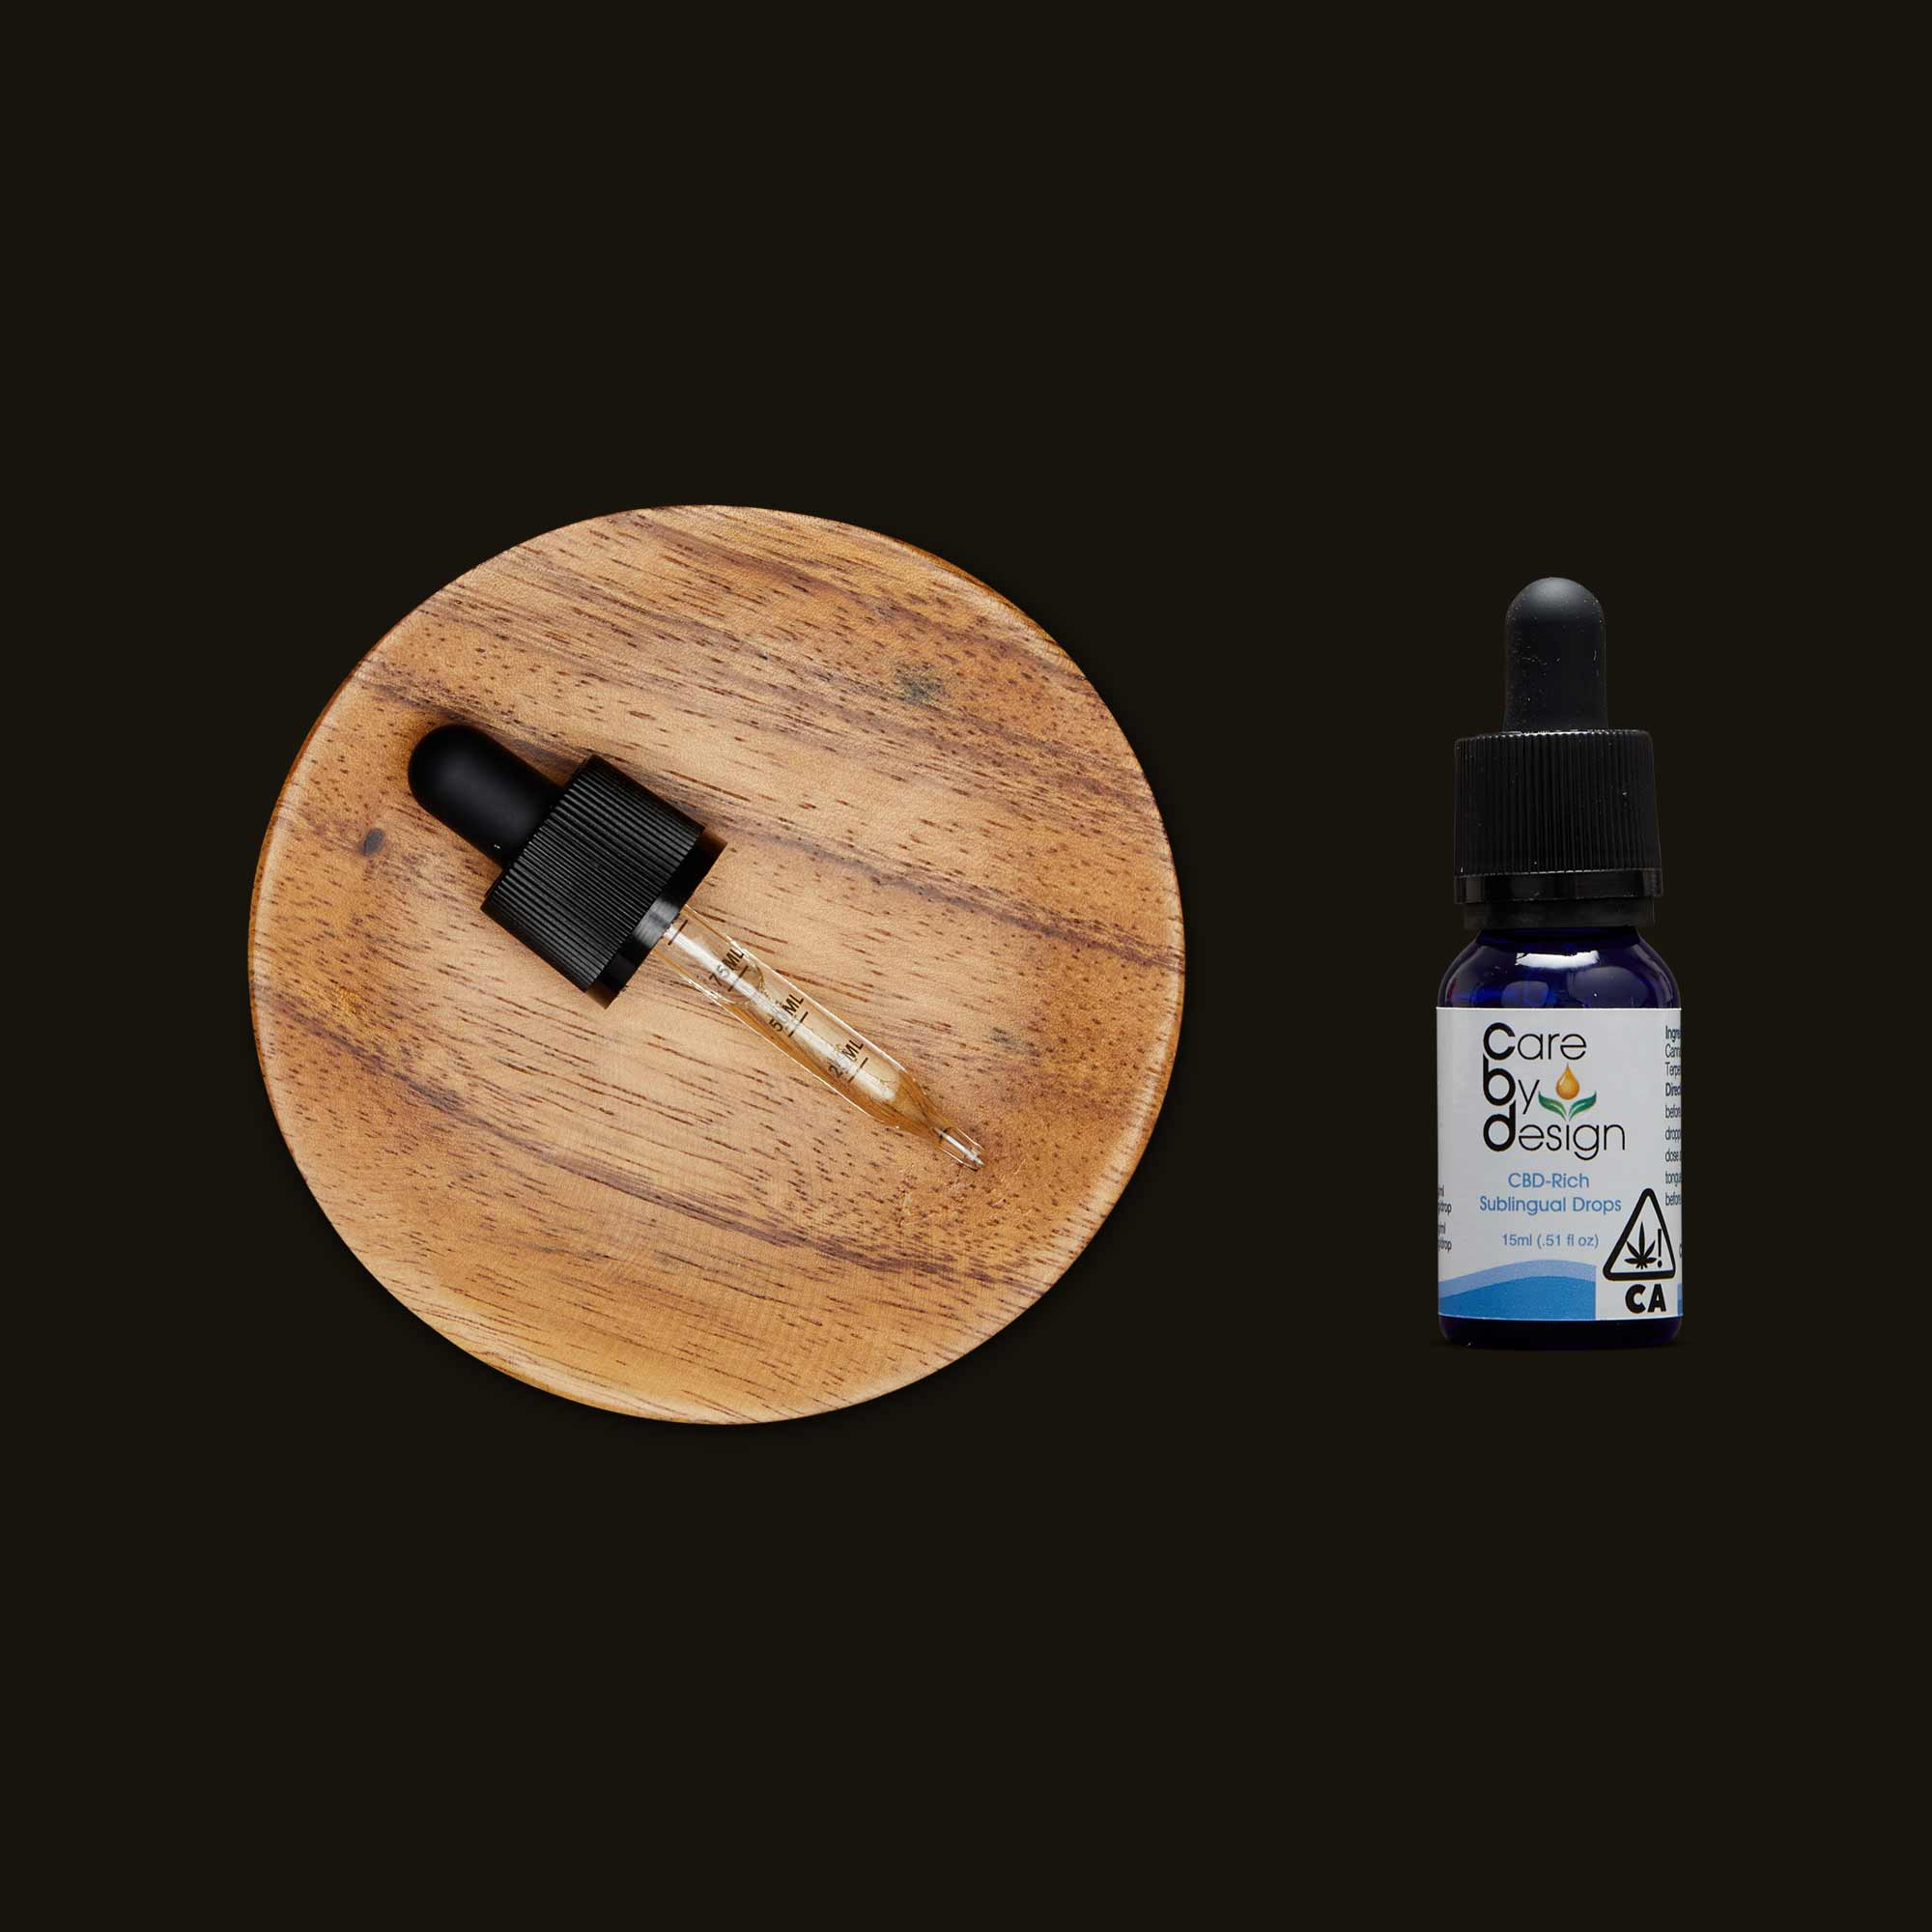 Care By Design 18:1 Sublingual Drops